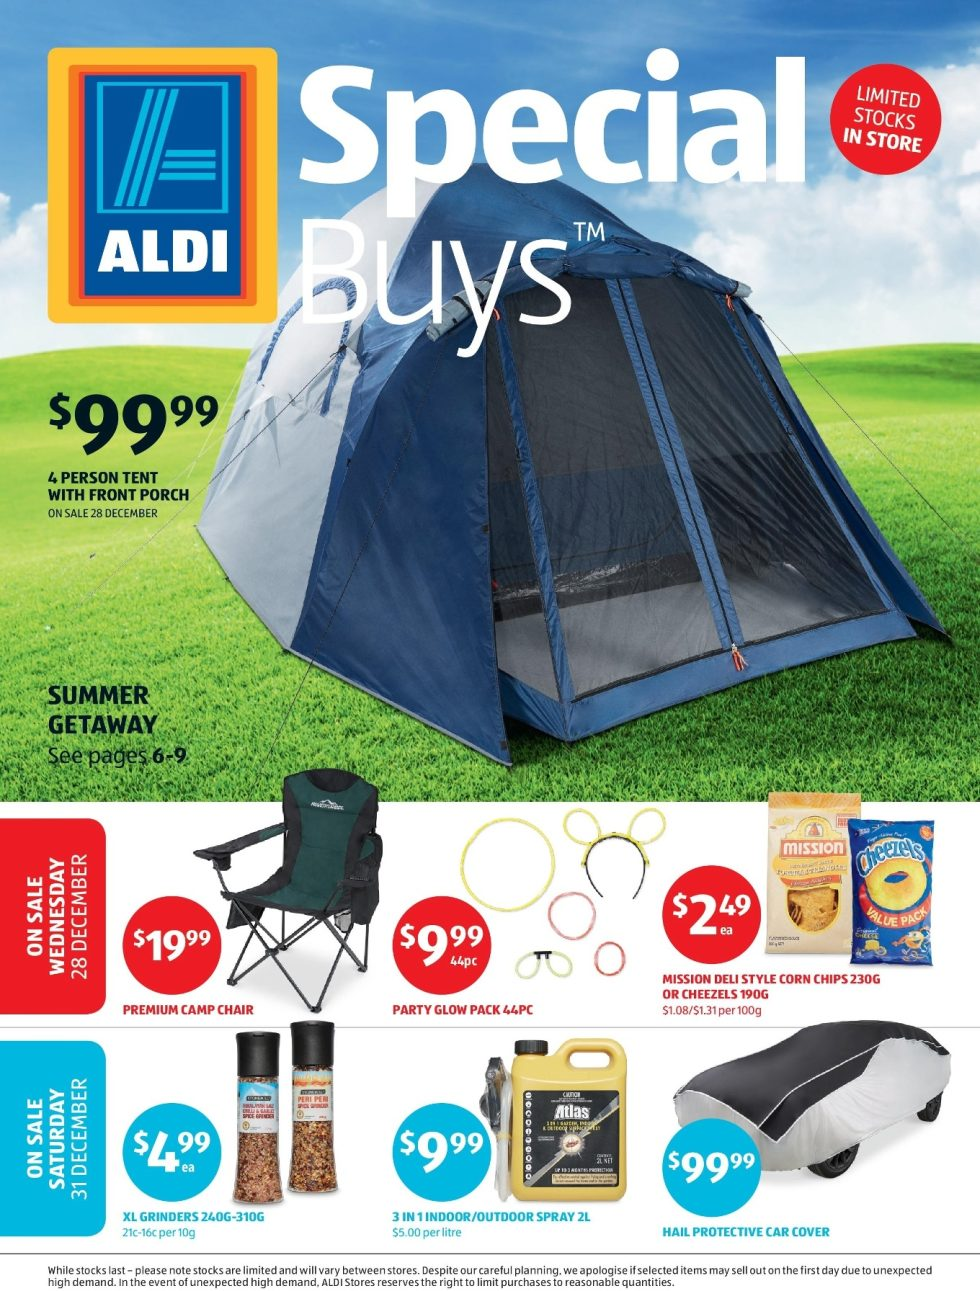 ALDI Special Buys 28 December to while stocks last  sc 1 st  Bargains AU & ALDI Special Buys 28 December to while stocks last - Bargains AU